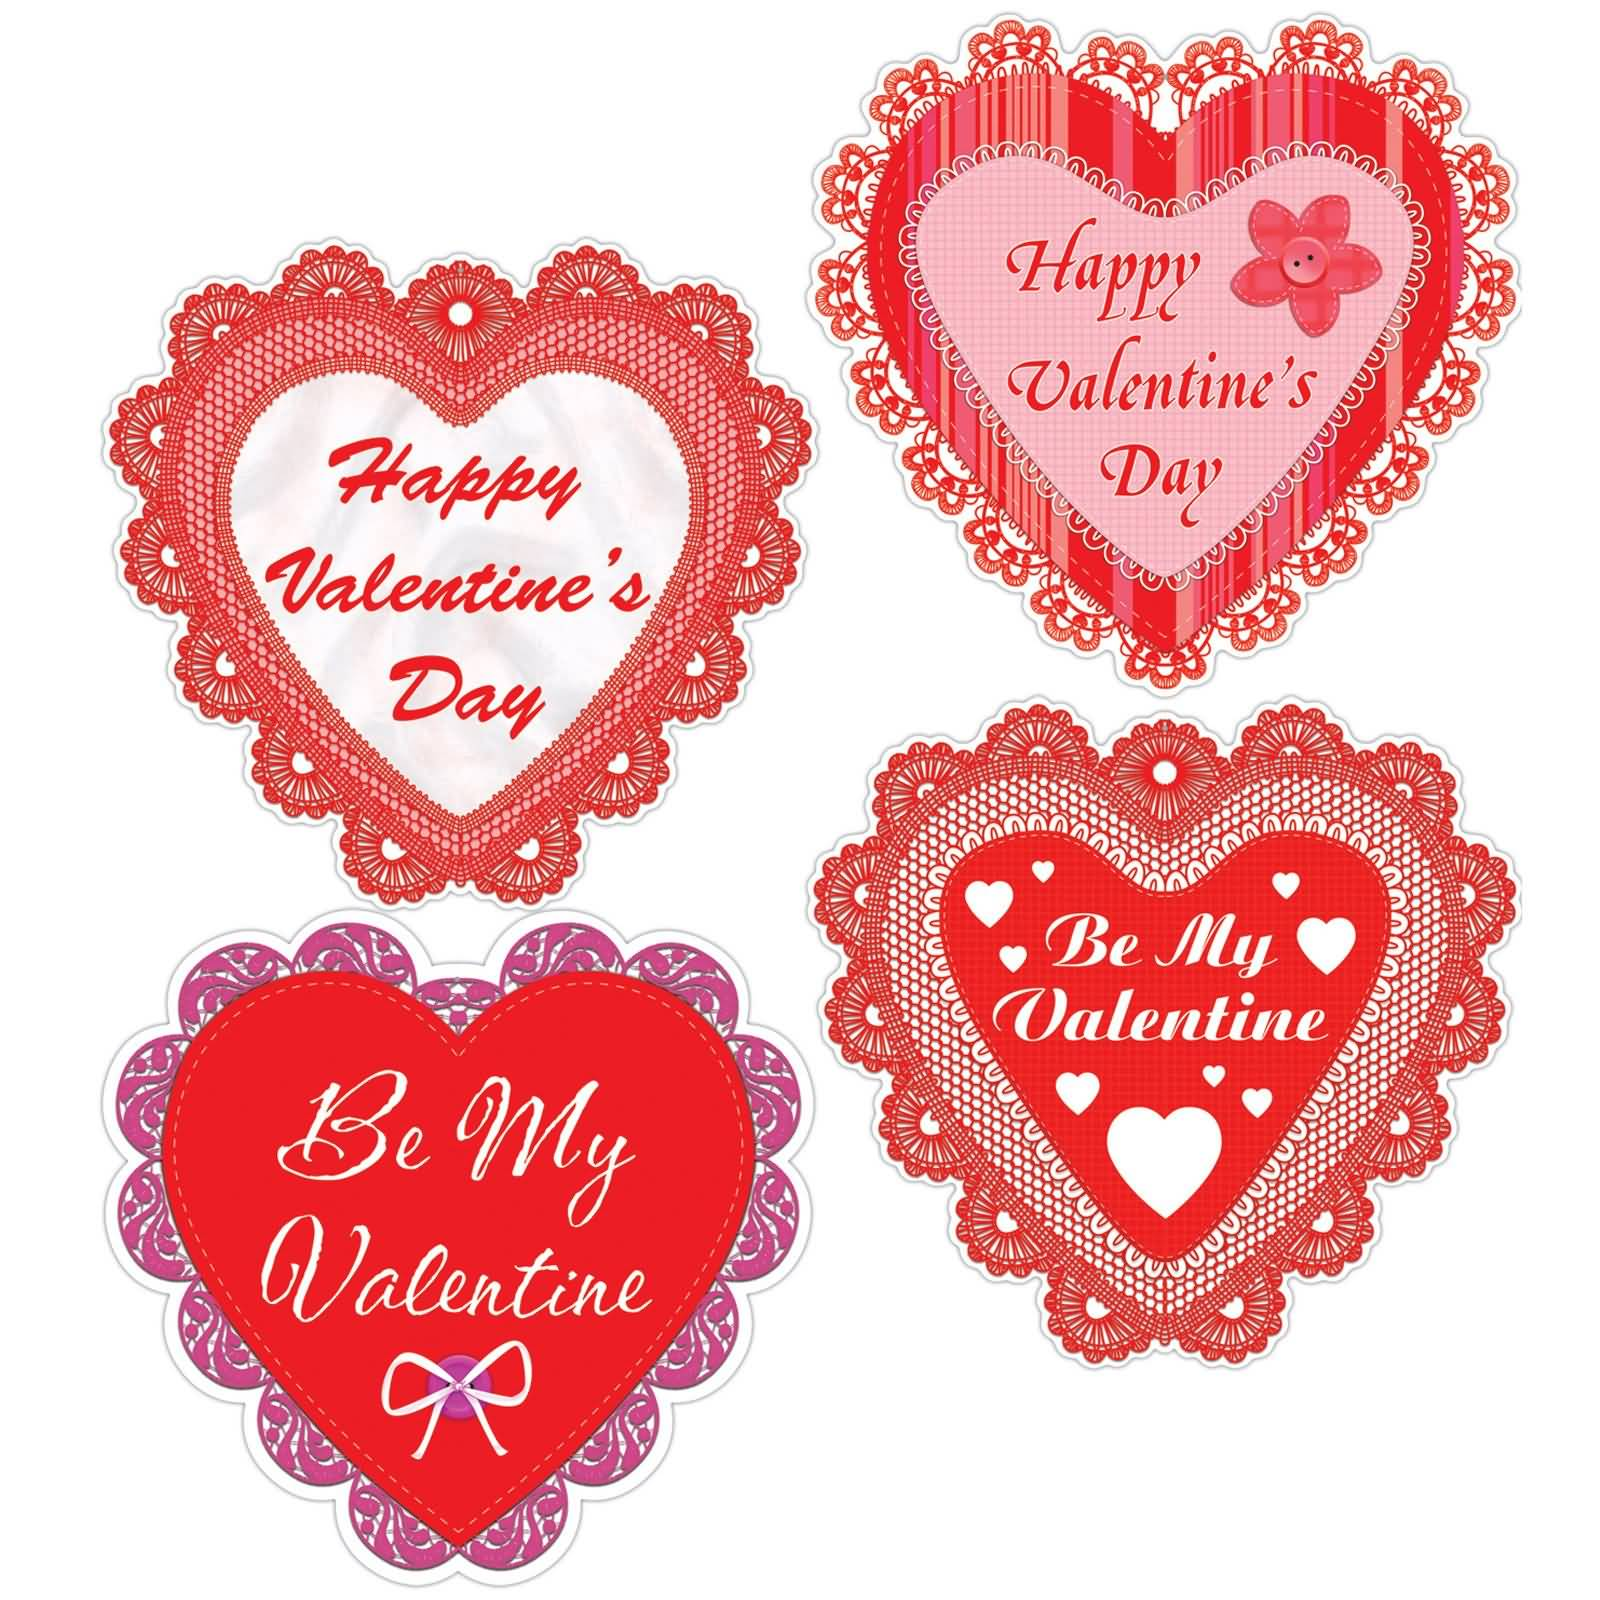 Happy Valentine's Day Be My Valentine Hearts Clipart.